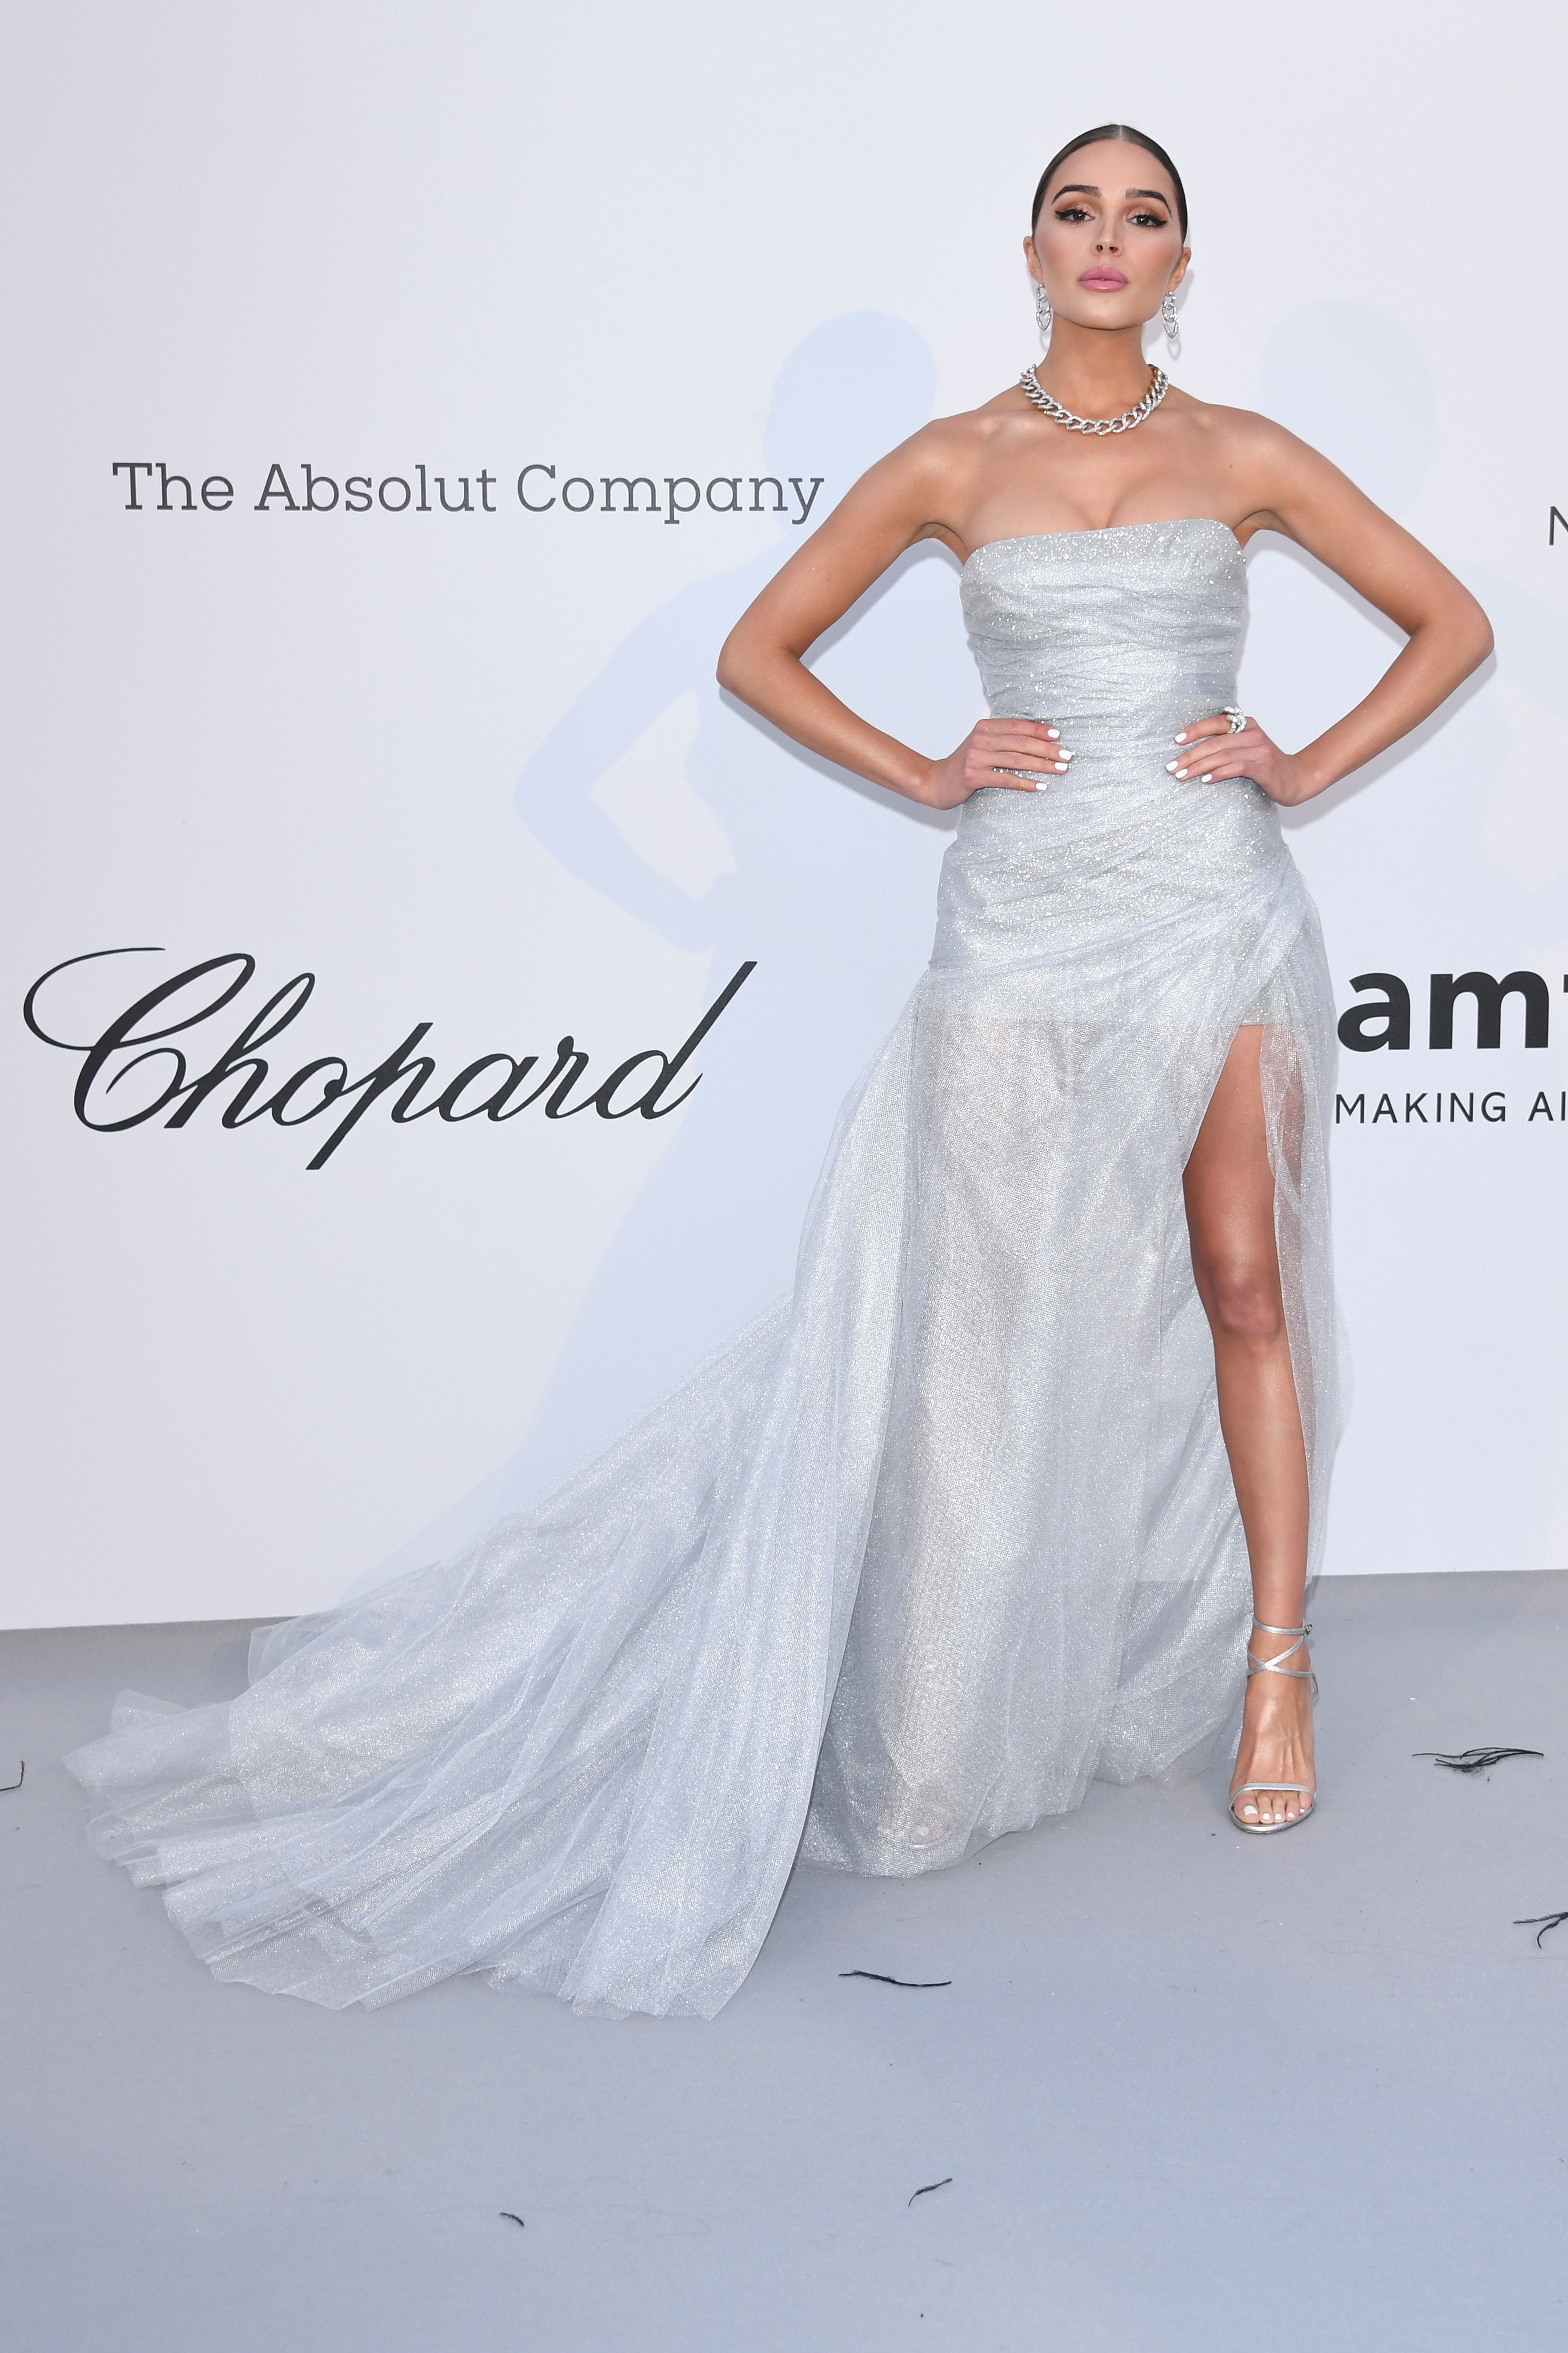 Olivia Culpo In a white strapless gown with a high-leg slit.